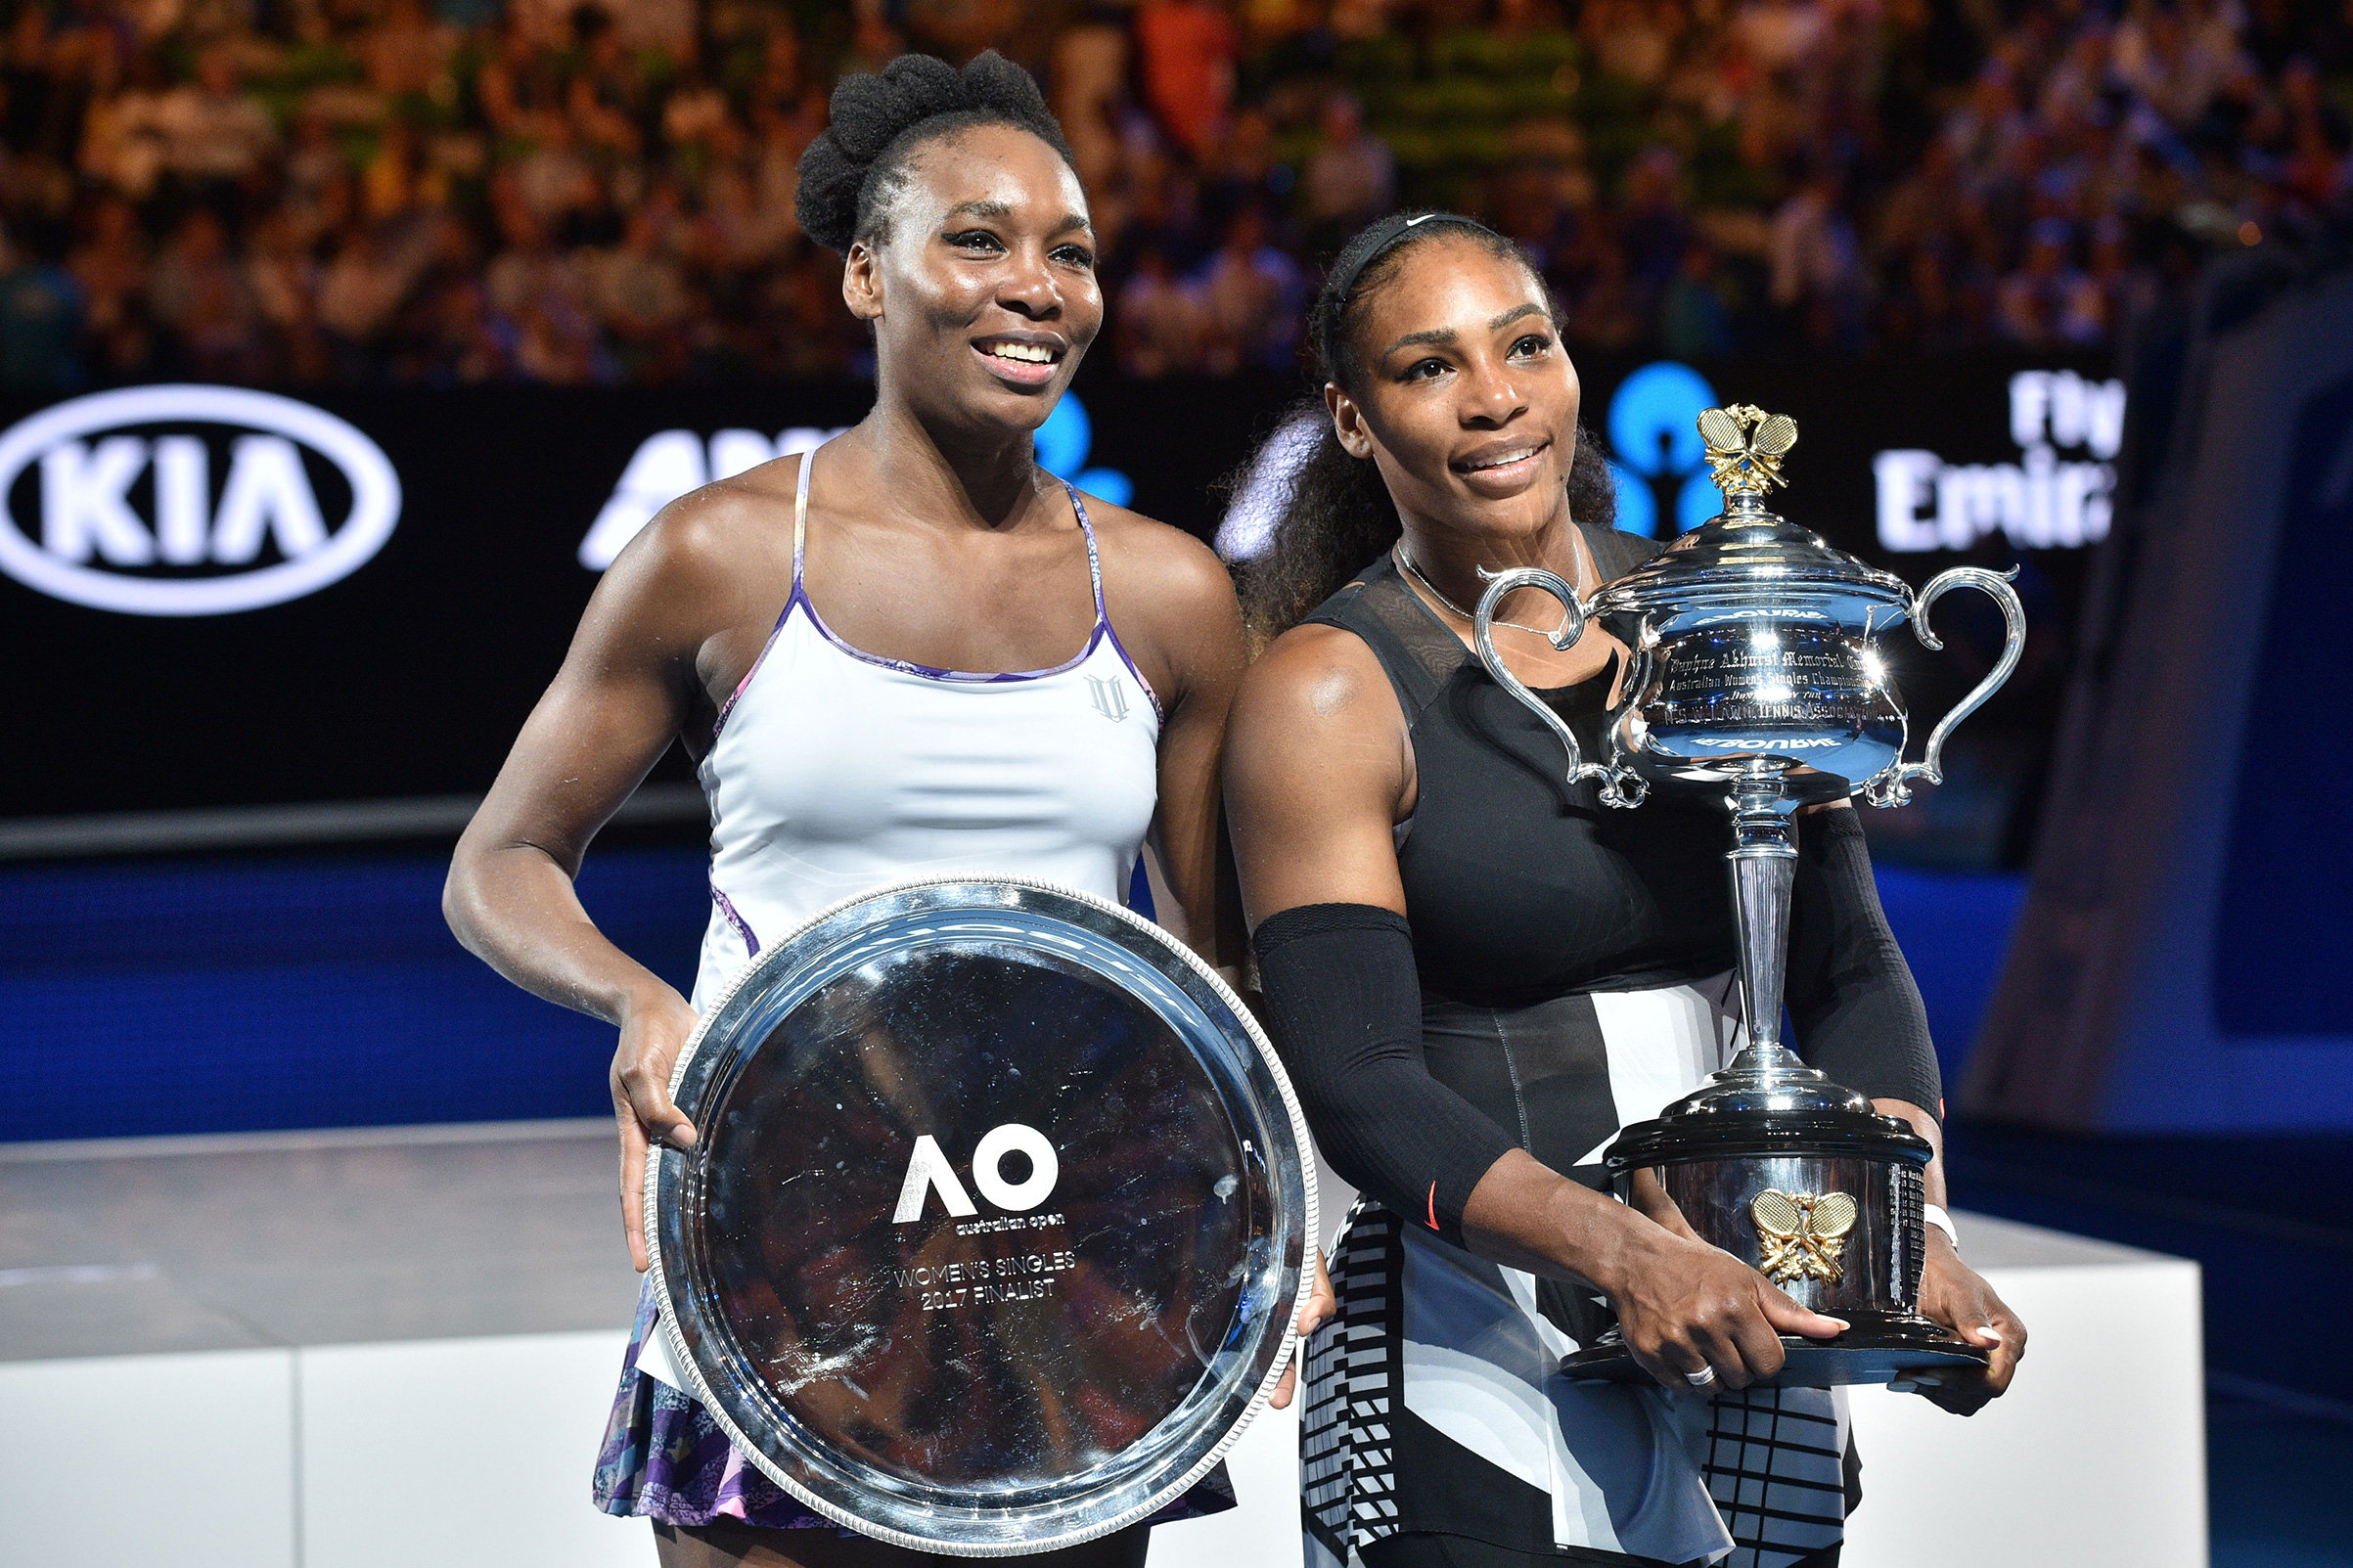 Serena Williams of the US (R) celebrates with the championship trophy during the awards ceremony after her victory against Venus Williams of the US in the women's singles final on day 13 of the Australian Open tennis tournament in Melbourne on January 28, 2017.